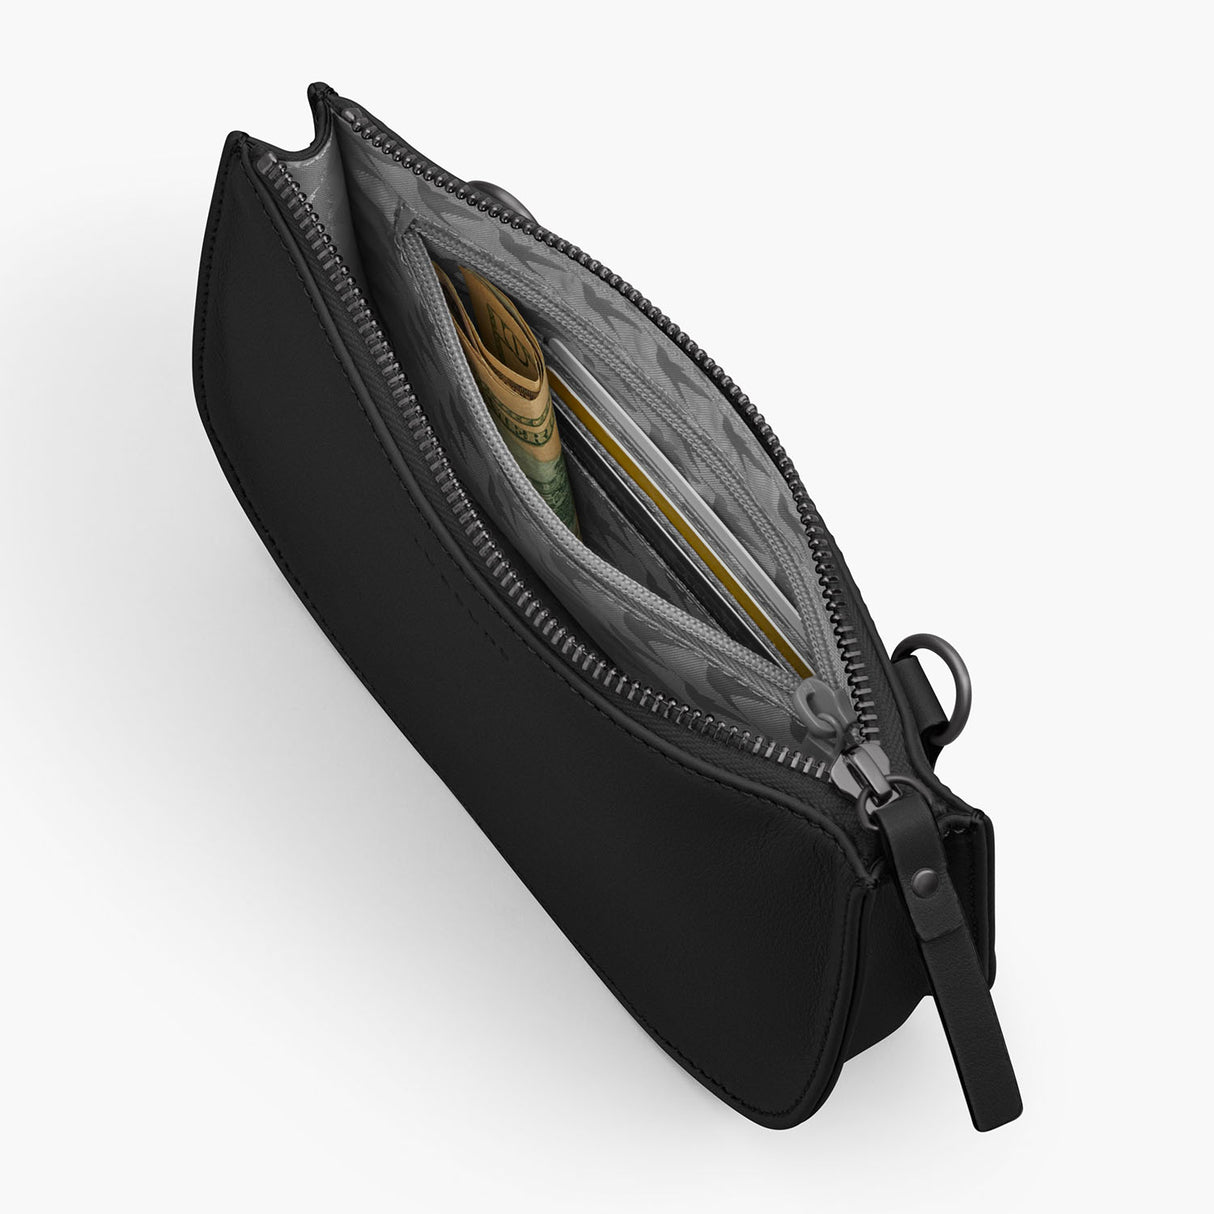 Interior Zipper - The Waverley 2 - Nappa Leather - Black / Gunmetal / Grey - Crossbody - Lo & Sons